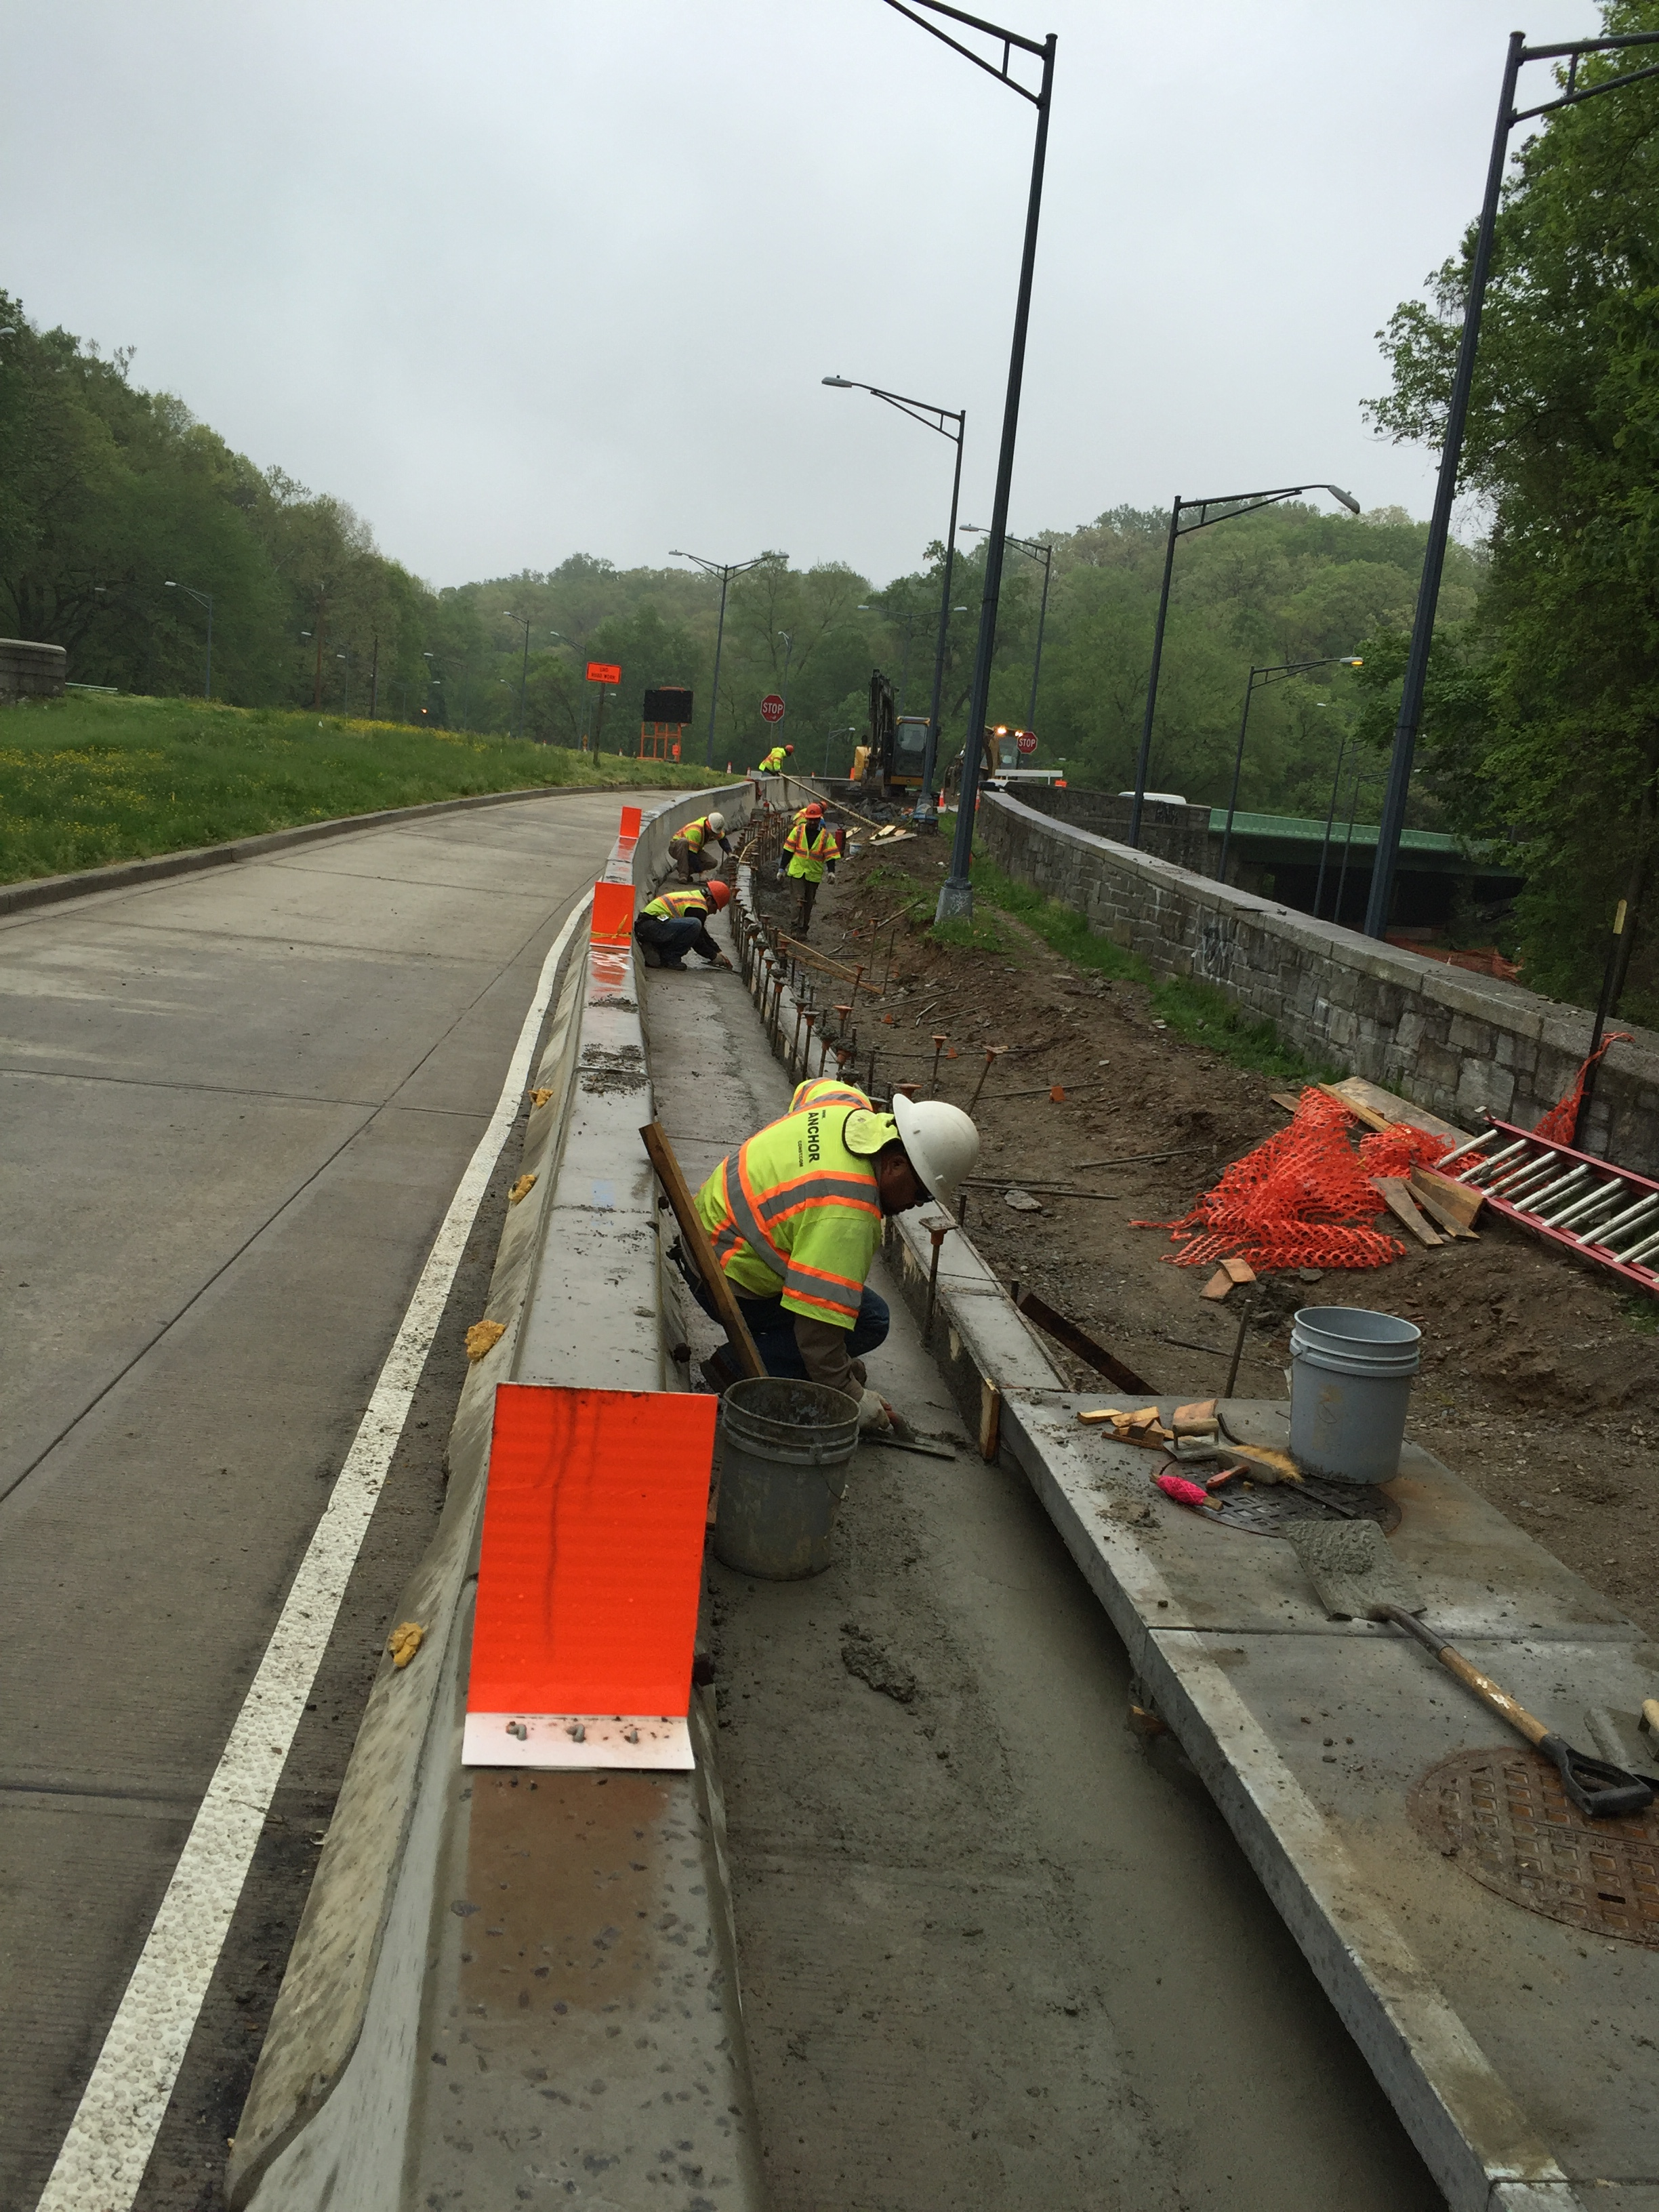 Once the water quality structure was set, the crew then placed the new concrete curb and gutter